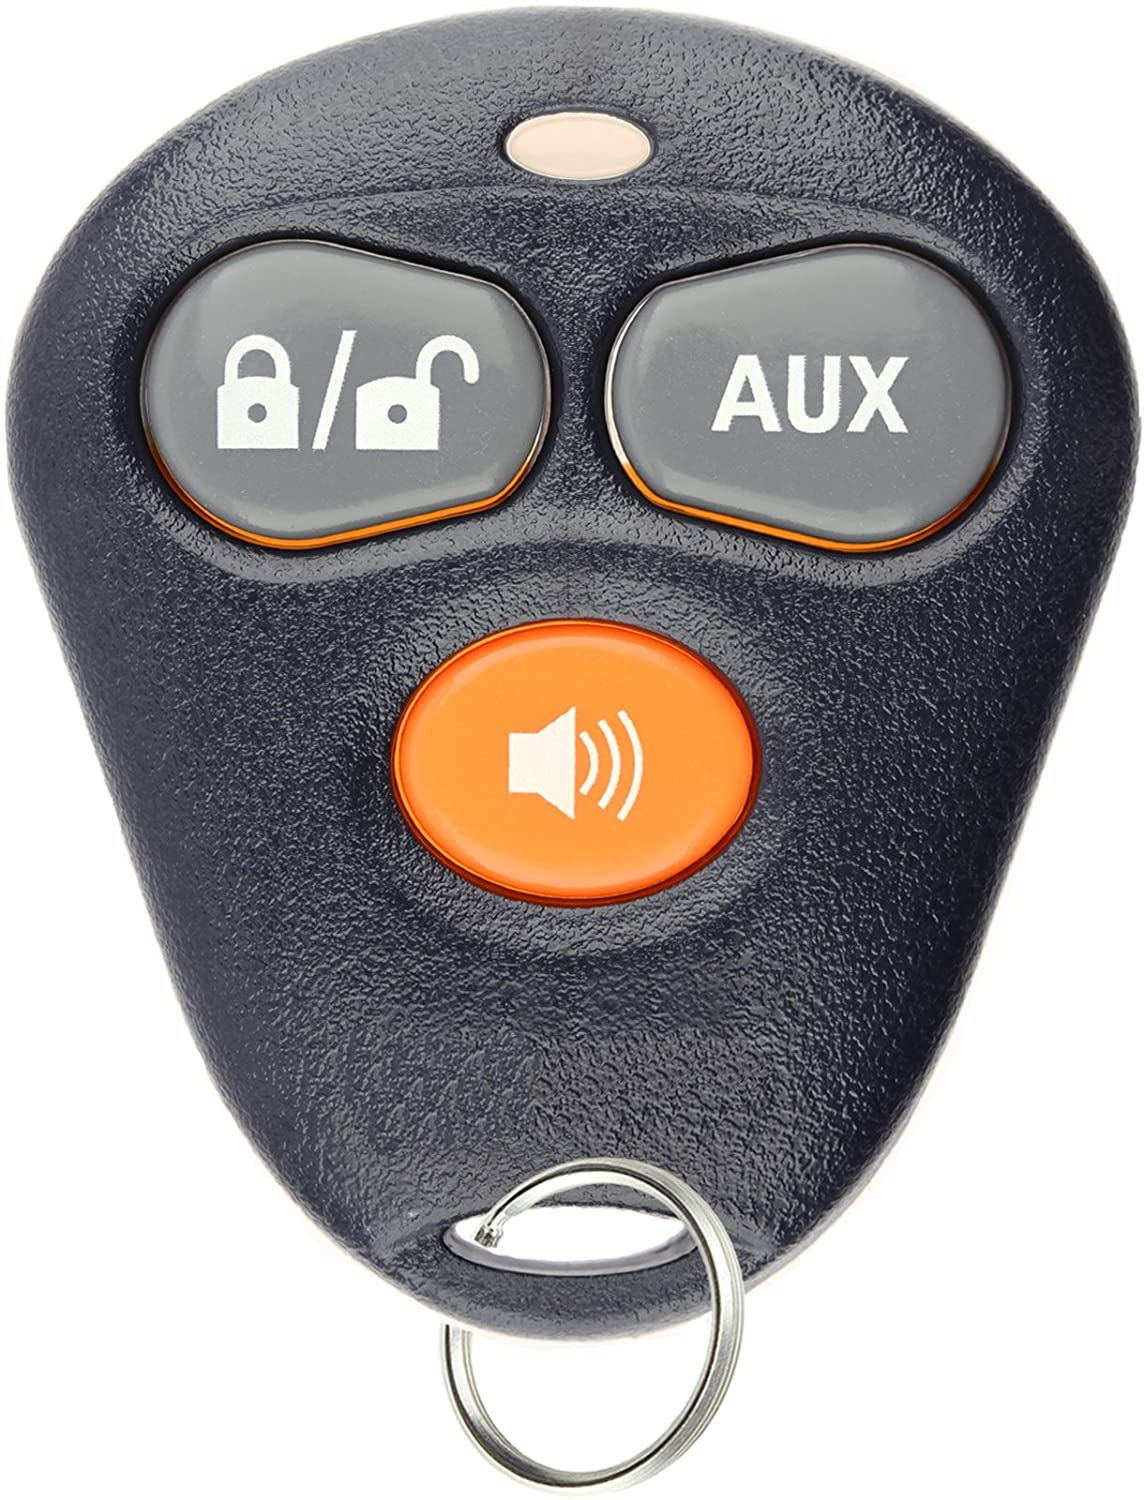 KeylessOption Keyless Entry Remote Starter Car Key Fob Alarm For Aftermarket Viper Automate EZSDEI474V 473V